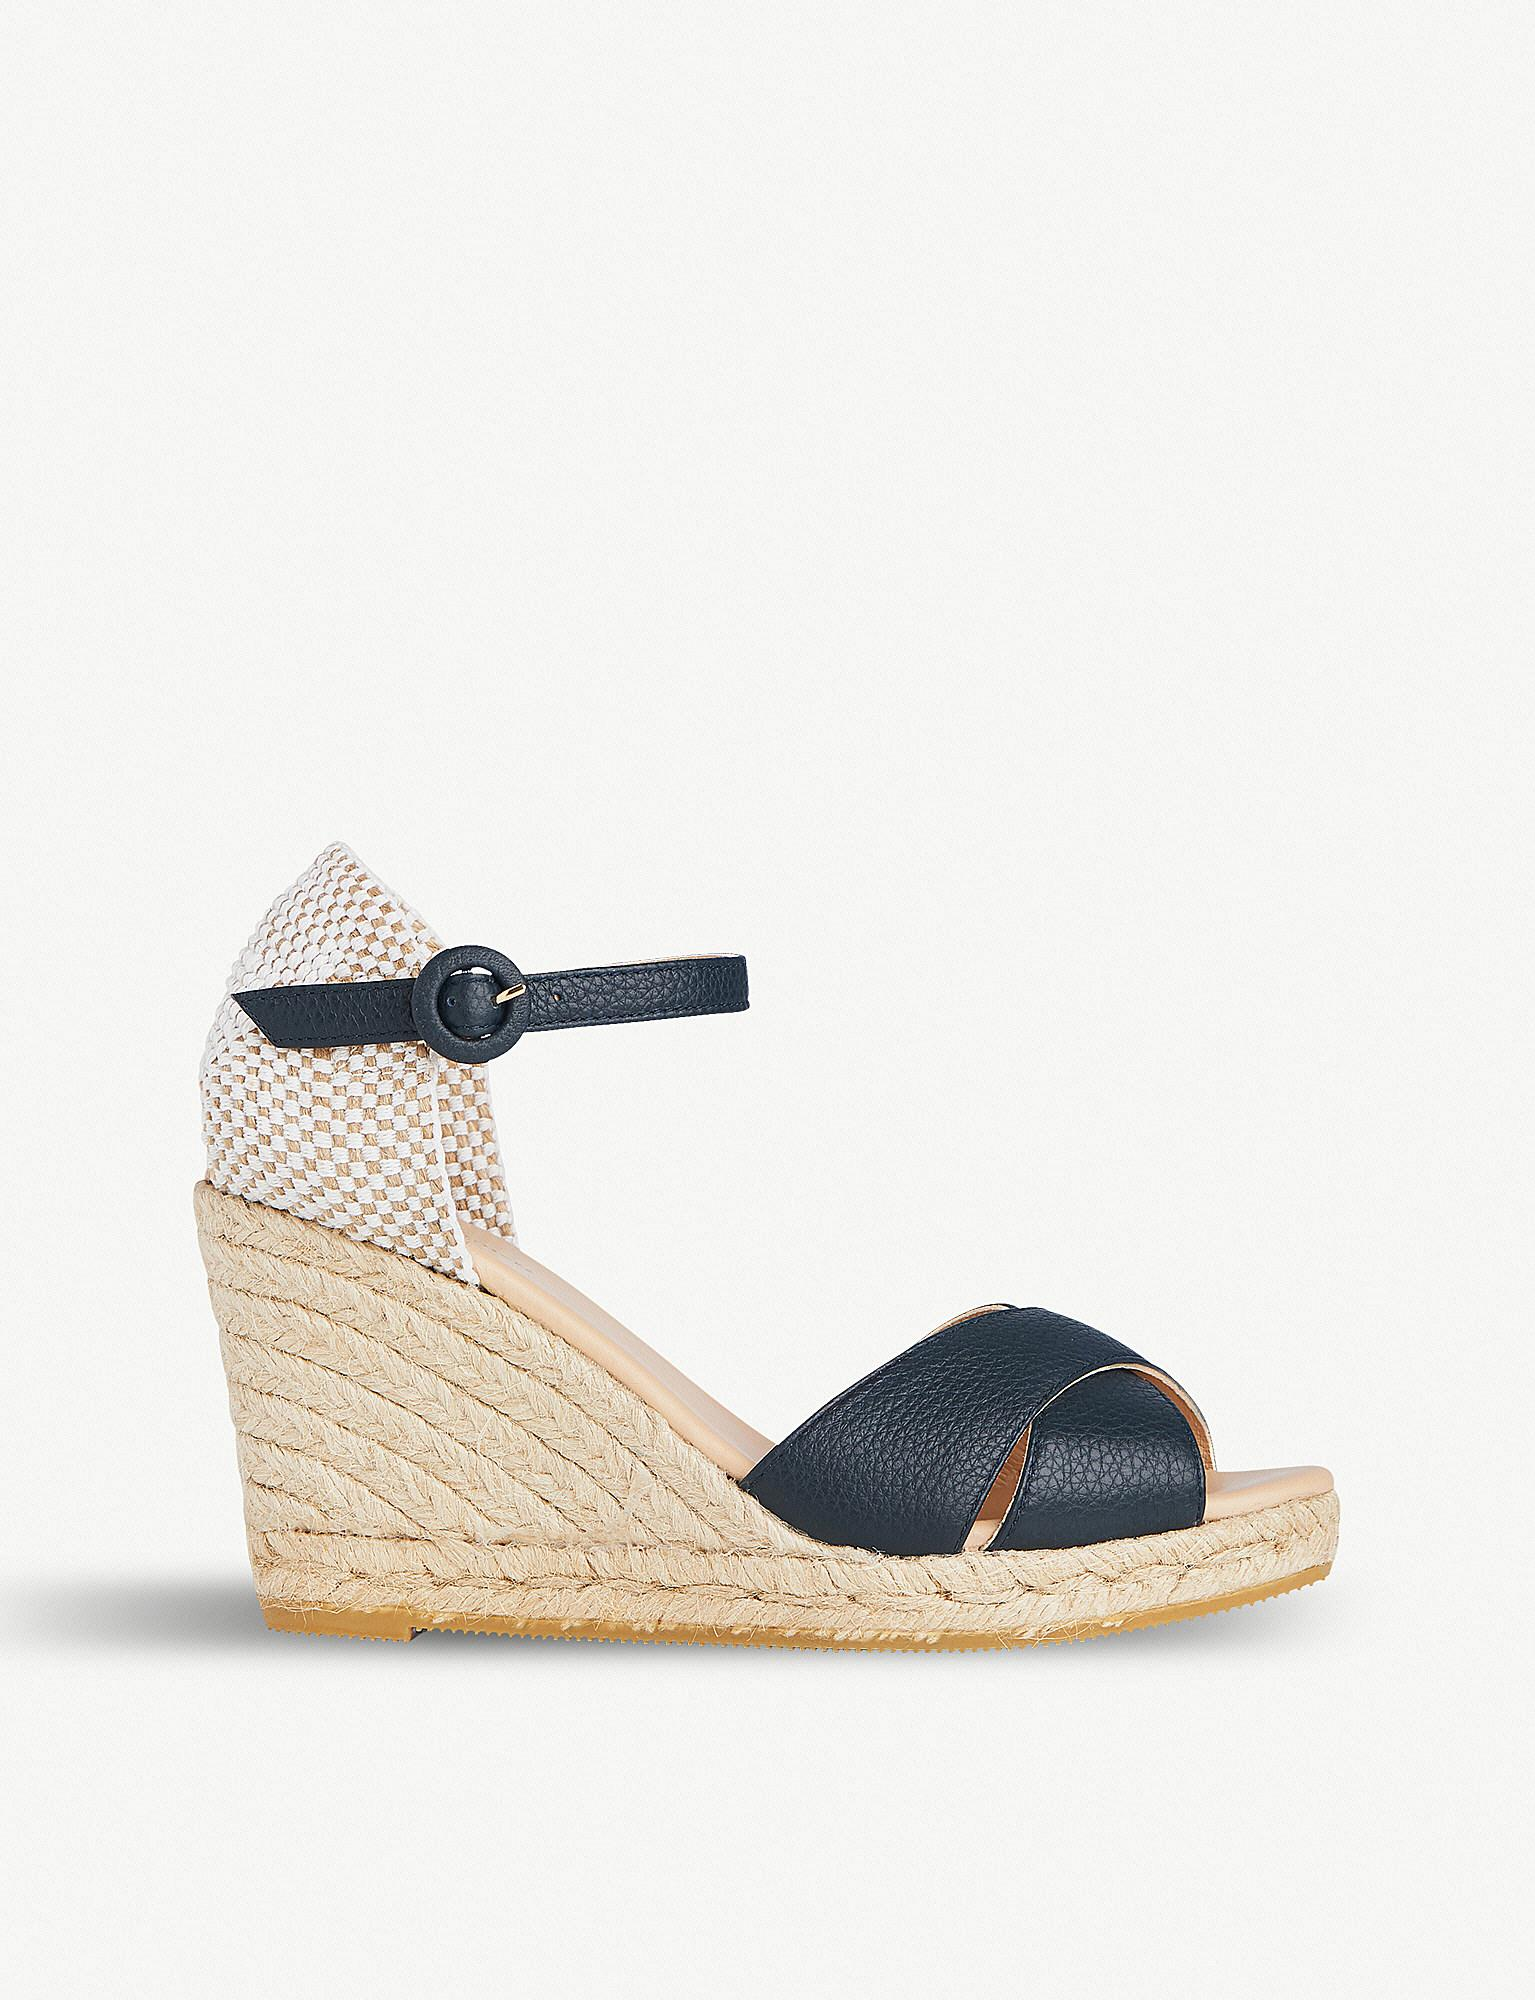 e6e87a3979 Lyst - L.K.Bennett Angele Patterned Leather Sandals in Blue